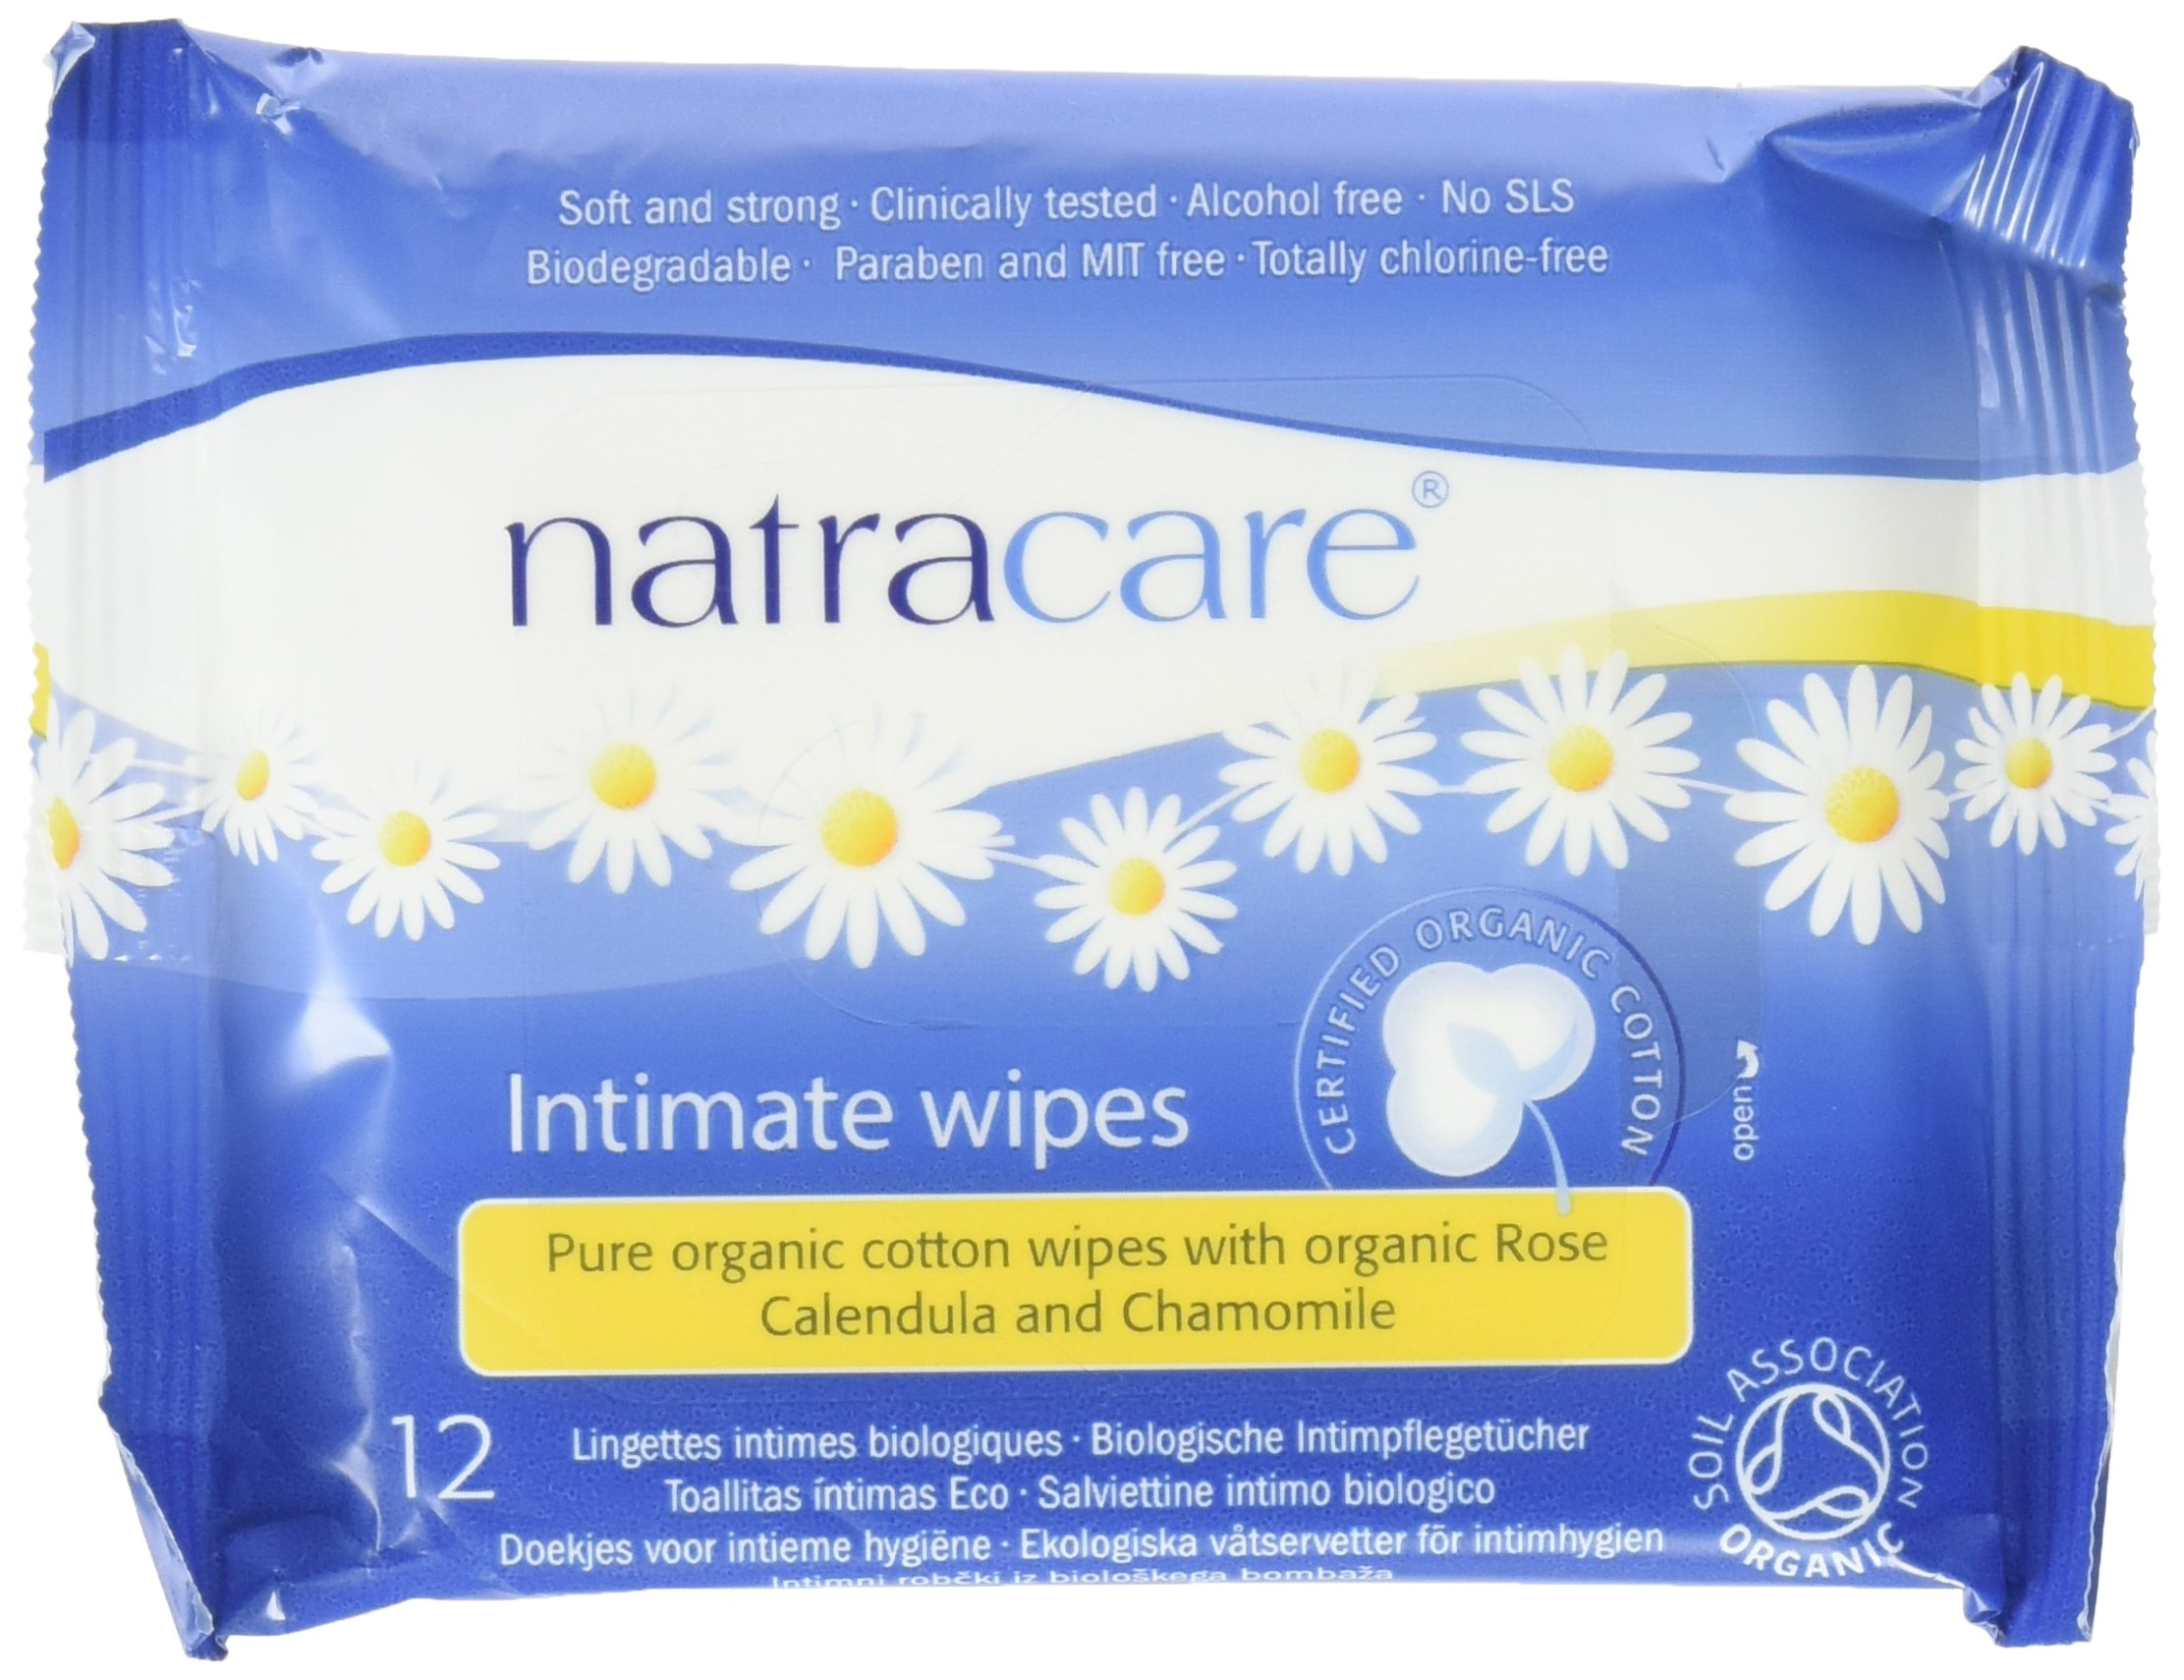 Natracare Organic Intimate Cotton Wipe - 12 Pack Value Size (144 Wipes Total)